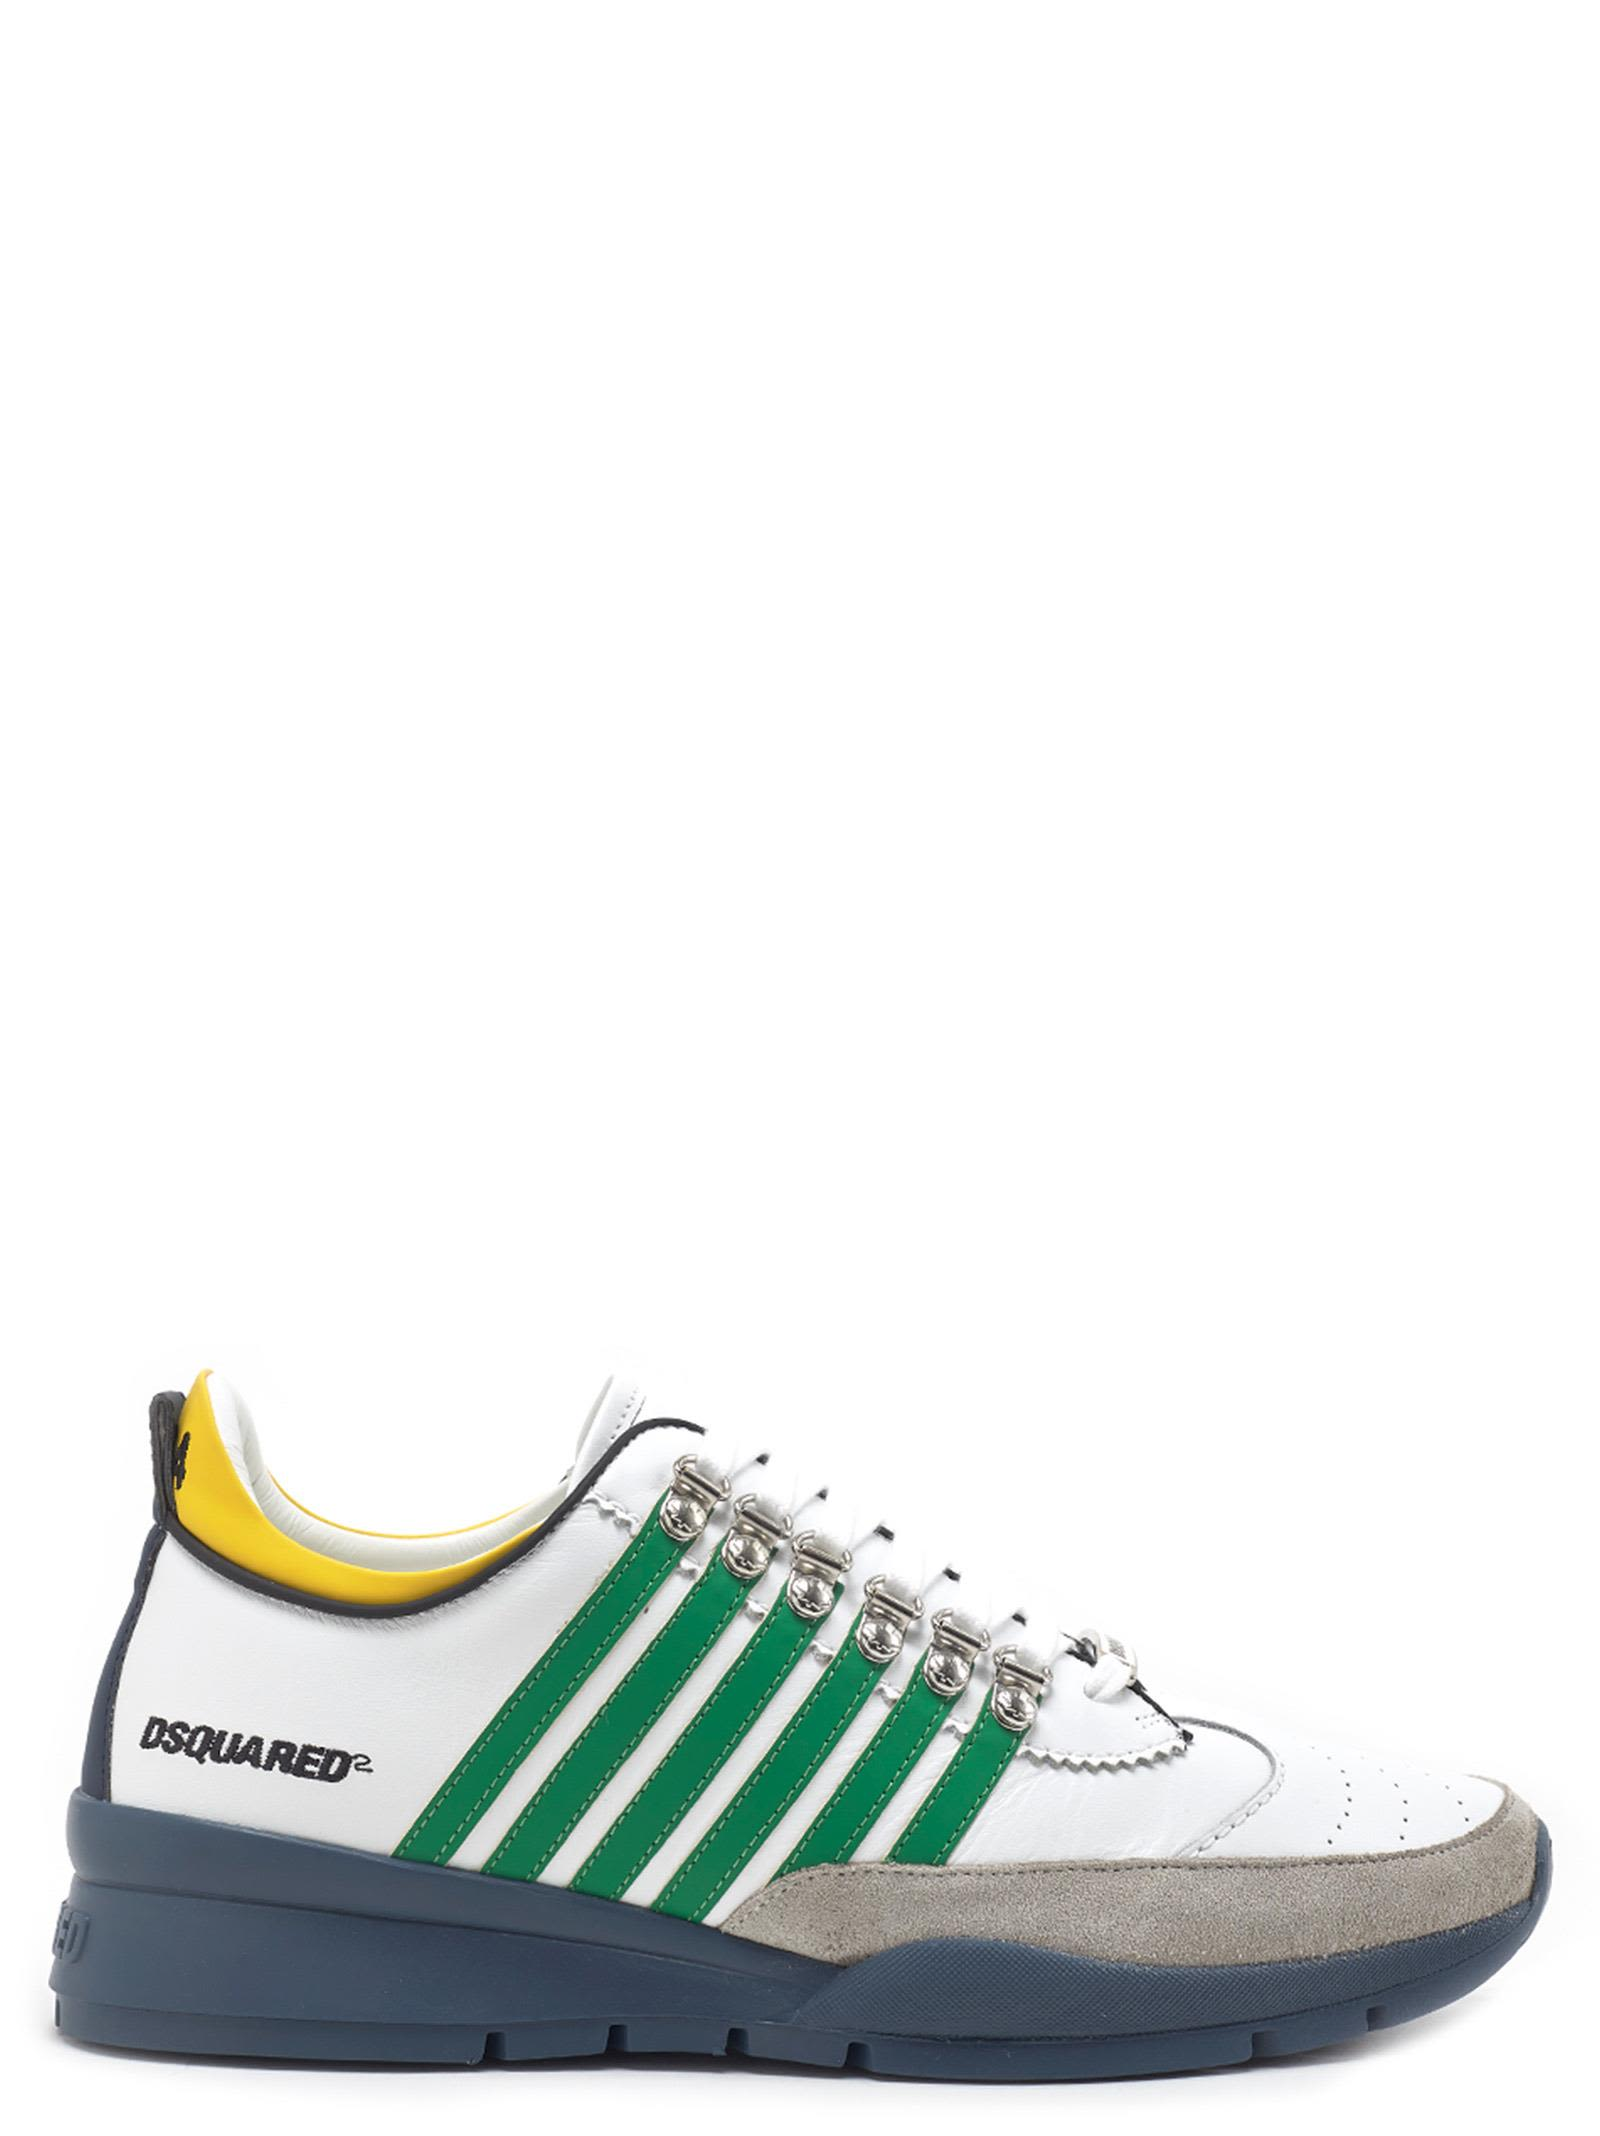 Dsquared2 '251' Shoes